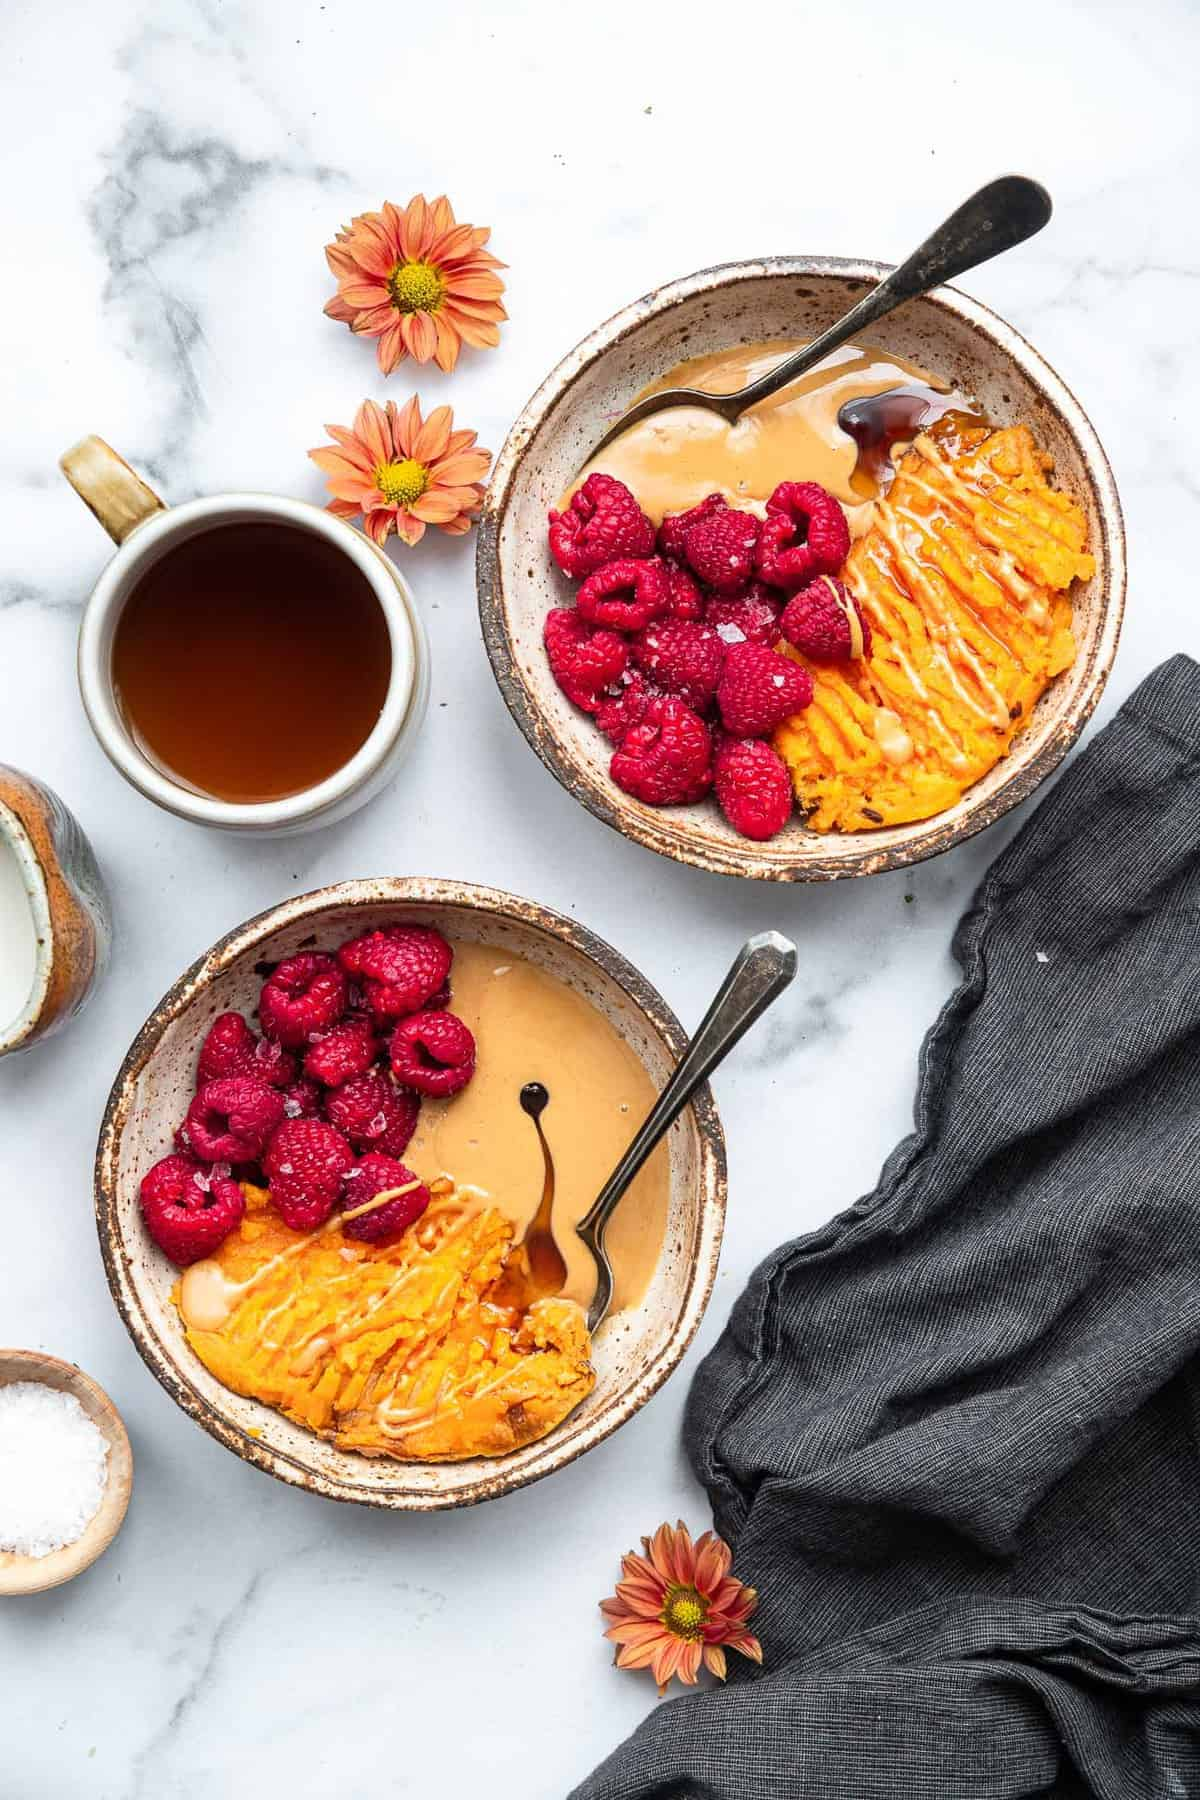 two sweet potato breakfast bowls on the counter with coffee on the side